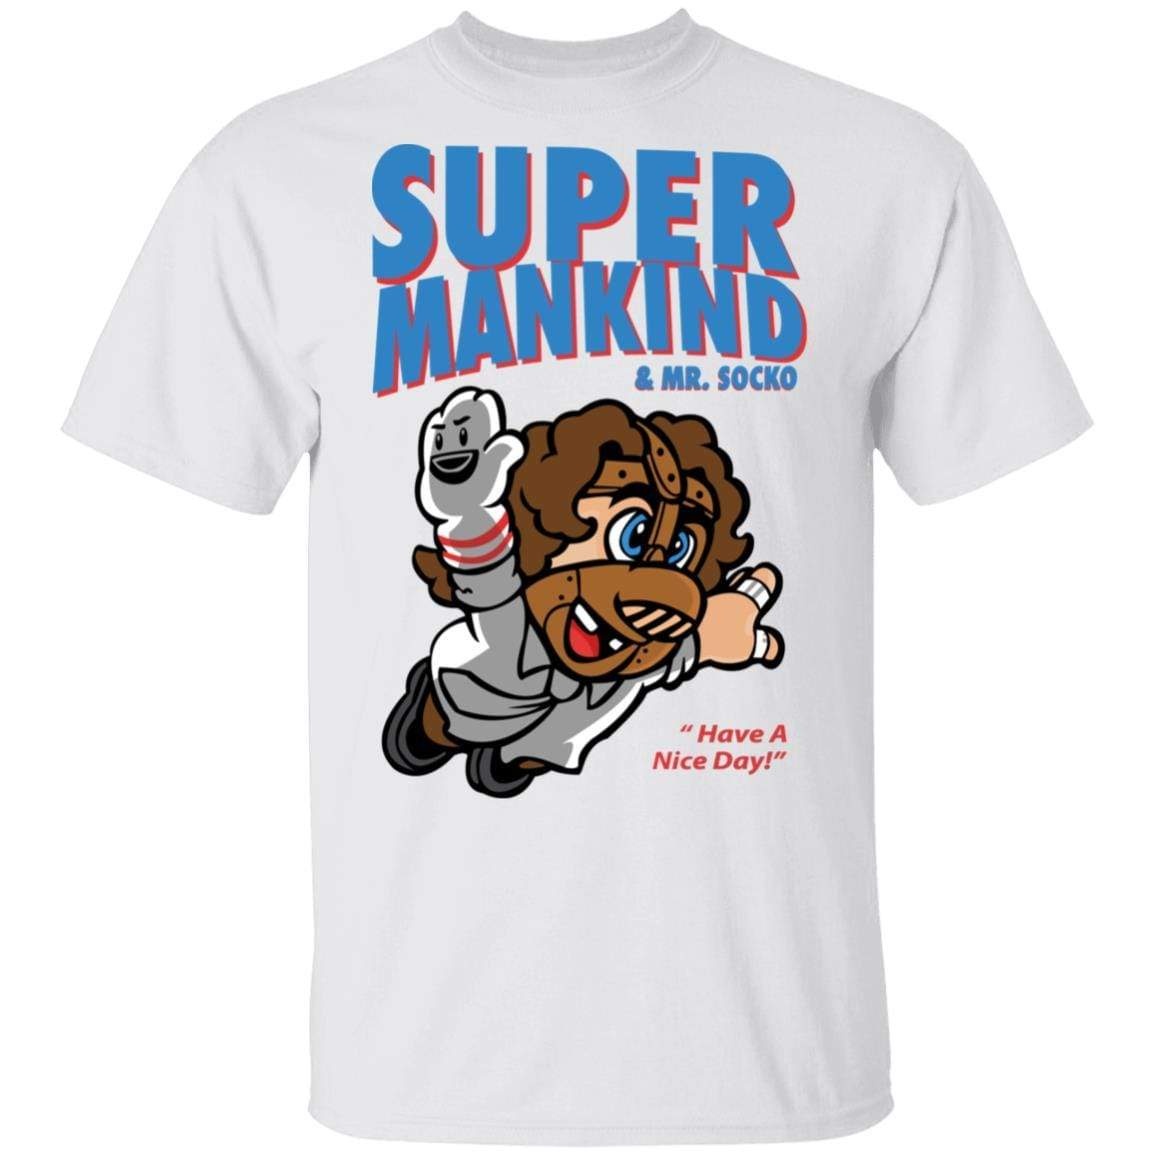 Super Mankind & Mr Socko Have A Nice Day T-Shirts, Hoodies 1049-9974-91844582-48300 - Tee Ript